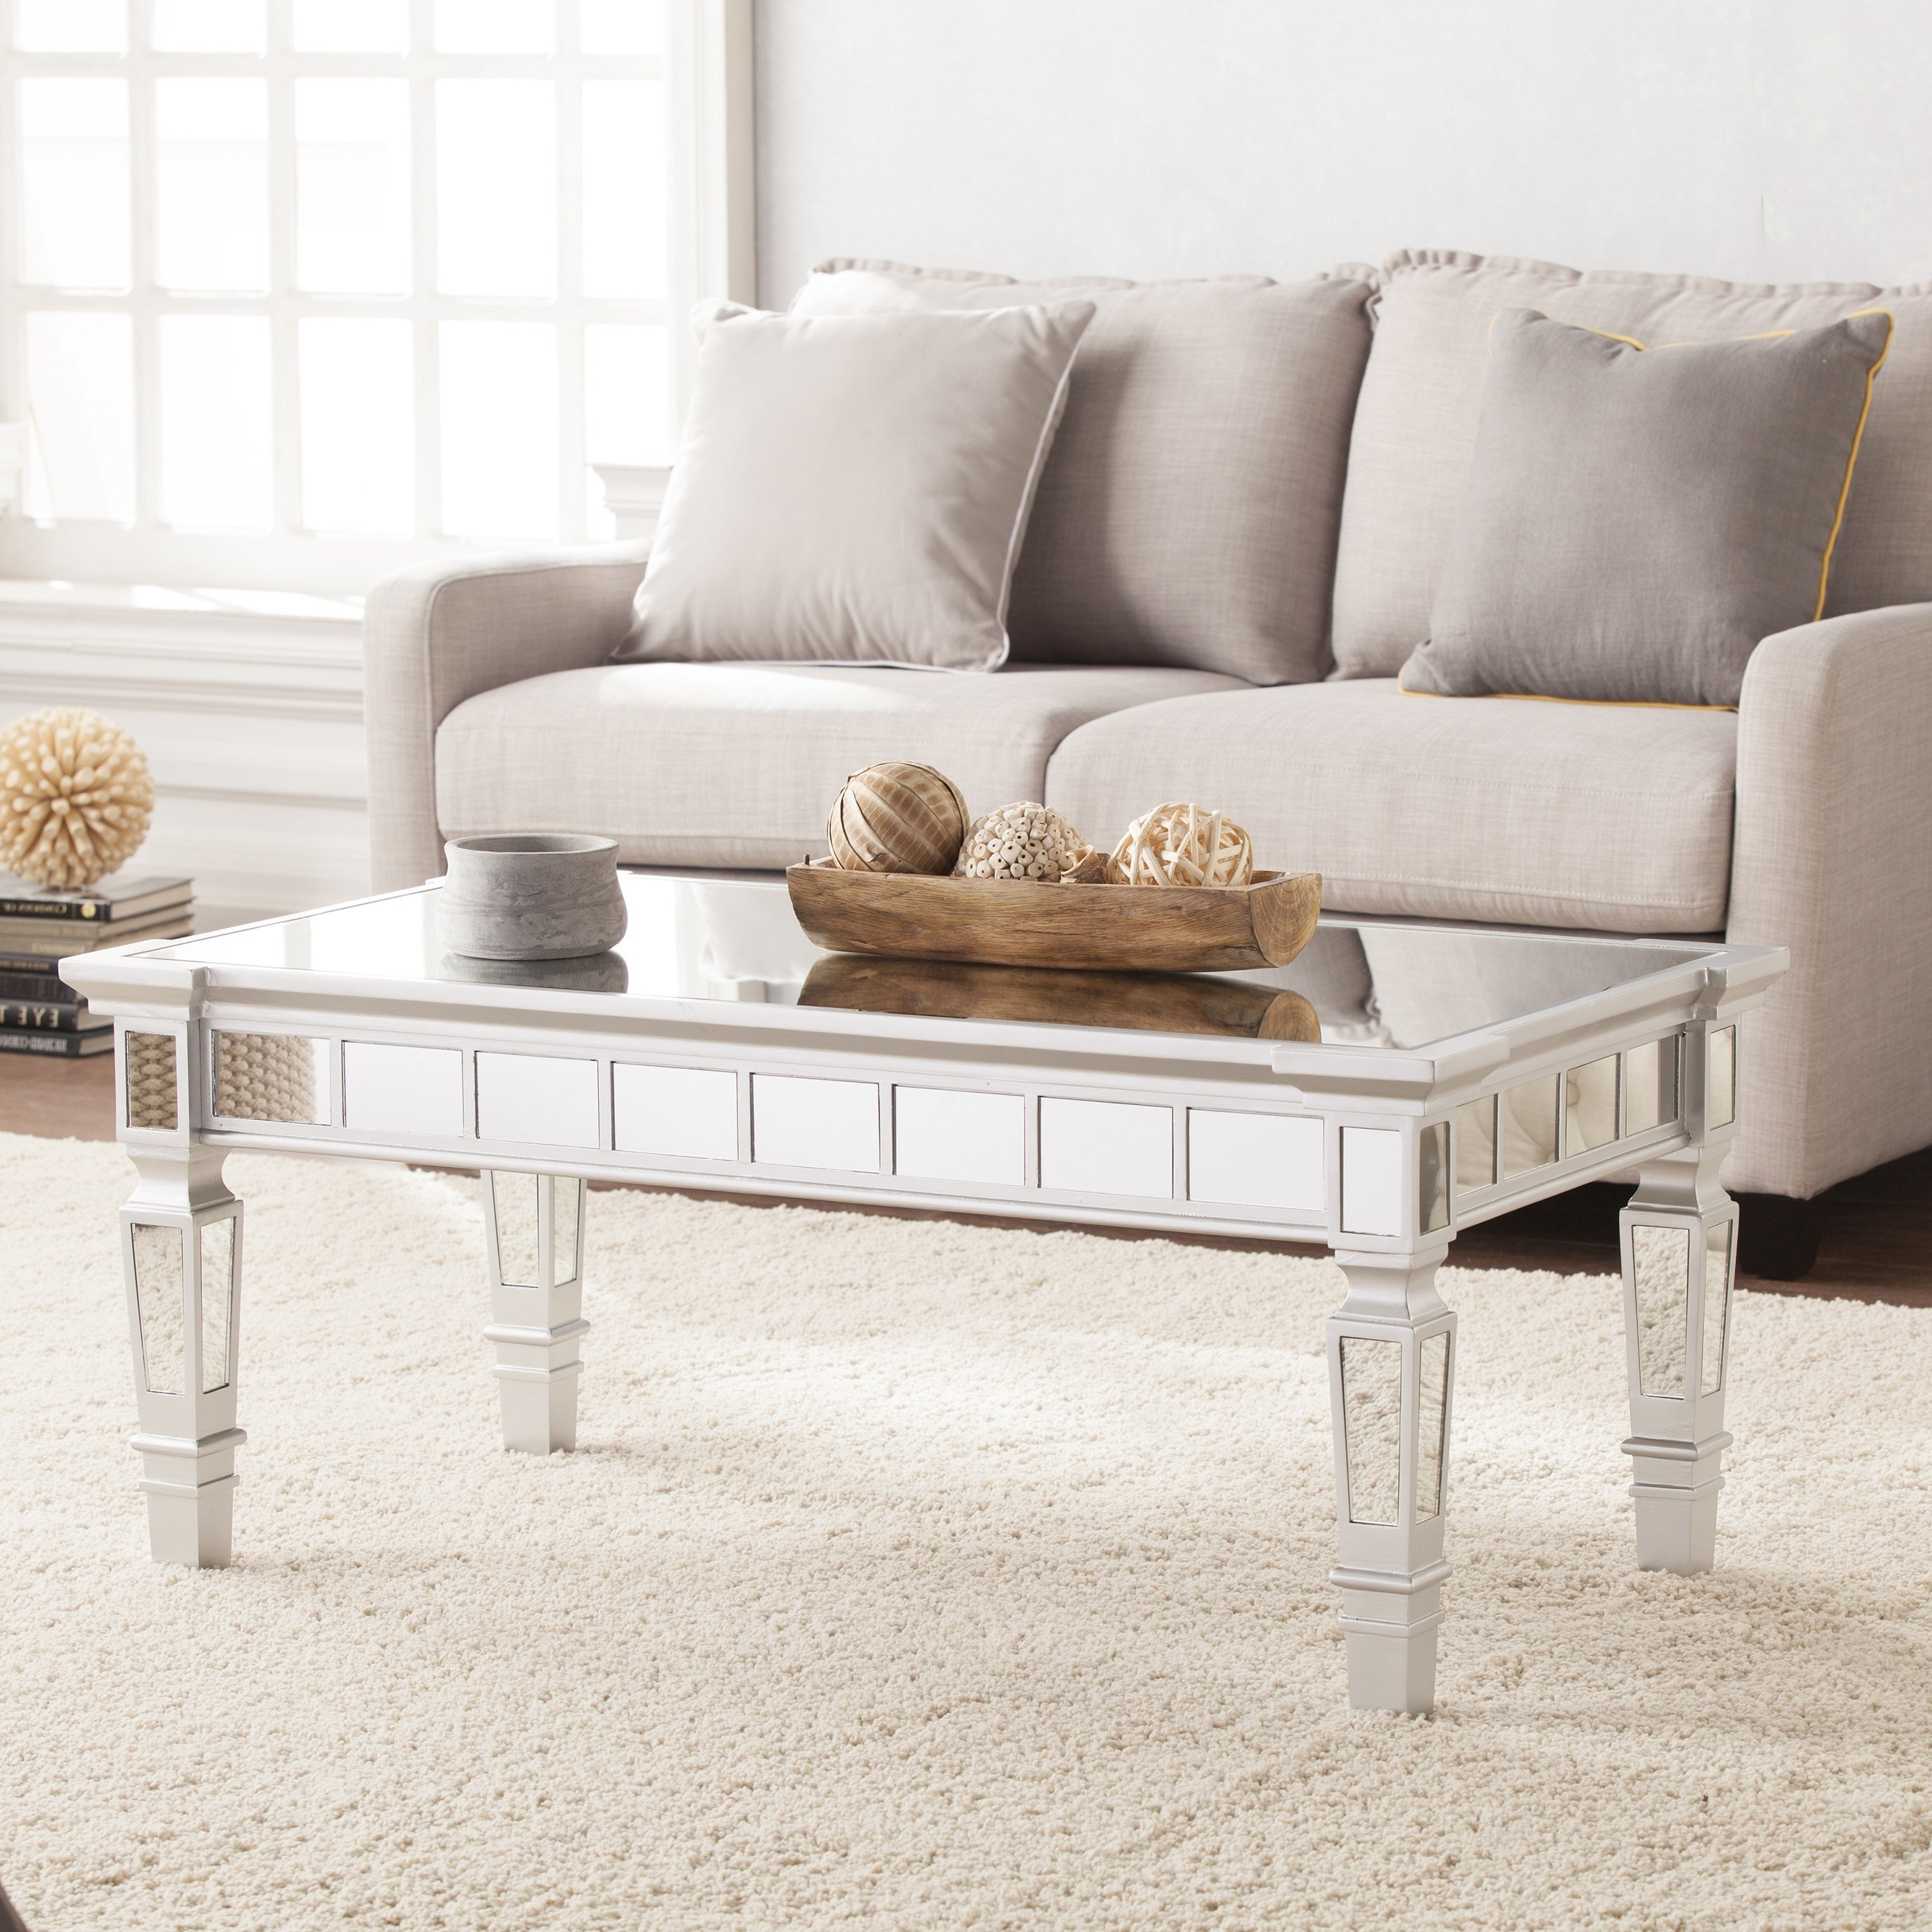 Well Liked Upton Home Dalton Mirrored Cocktail Tables Throughout Silver Orchid Olivia Glam Mirrored Rectangular Cocktail Table – Matte Silver (View 12 of 20)